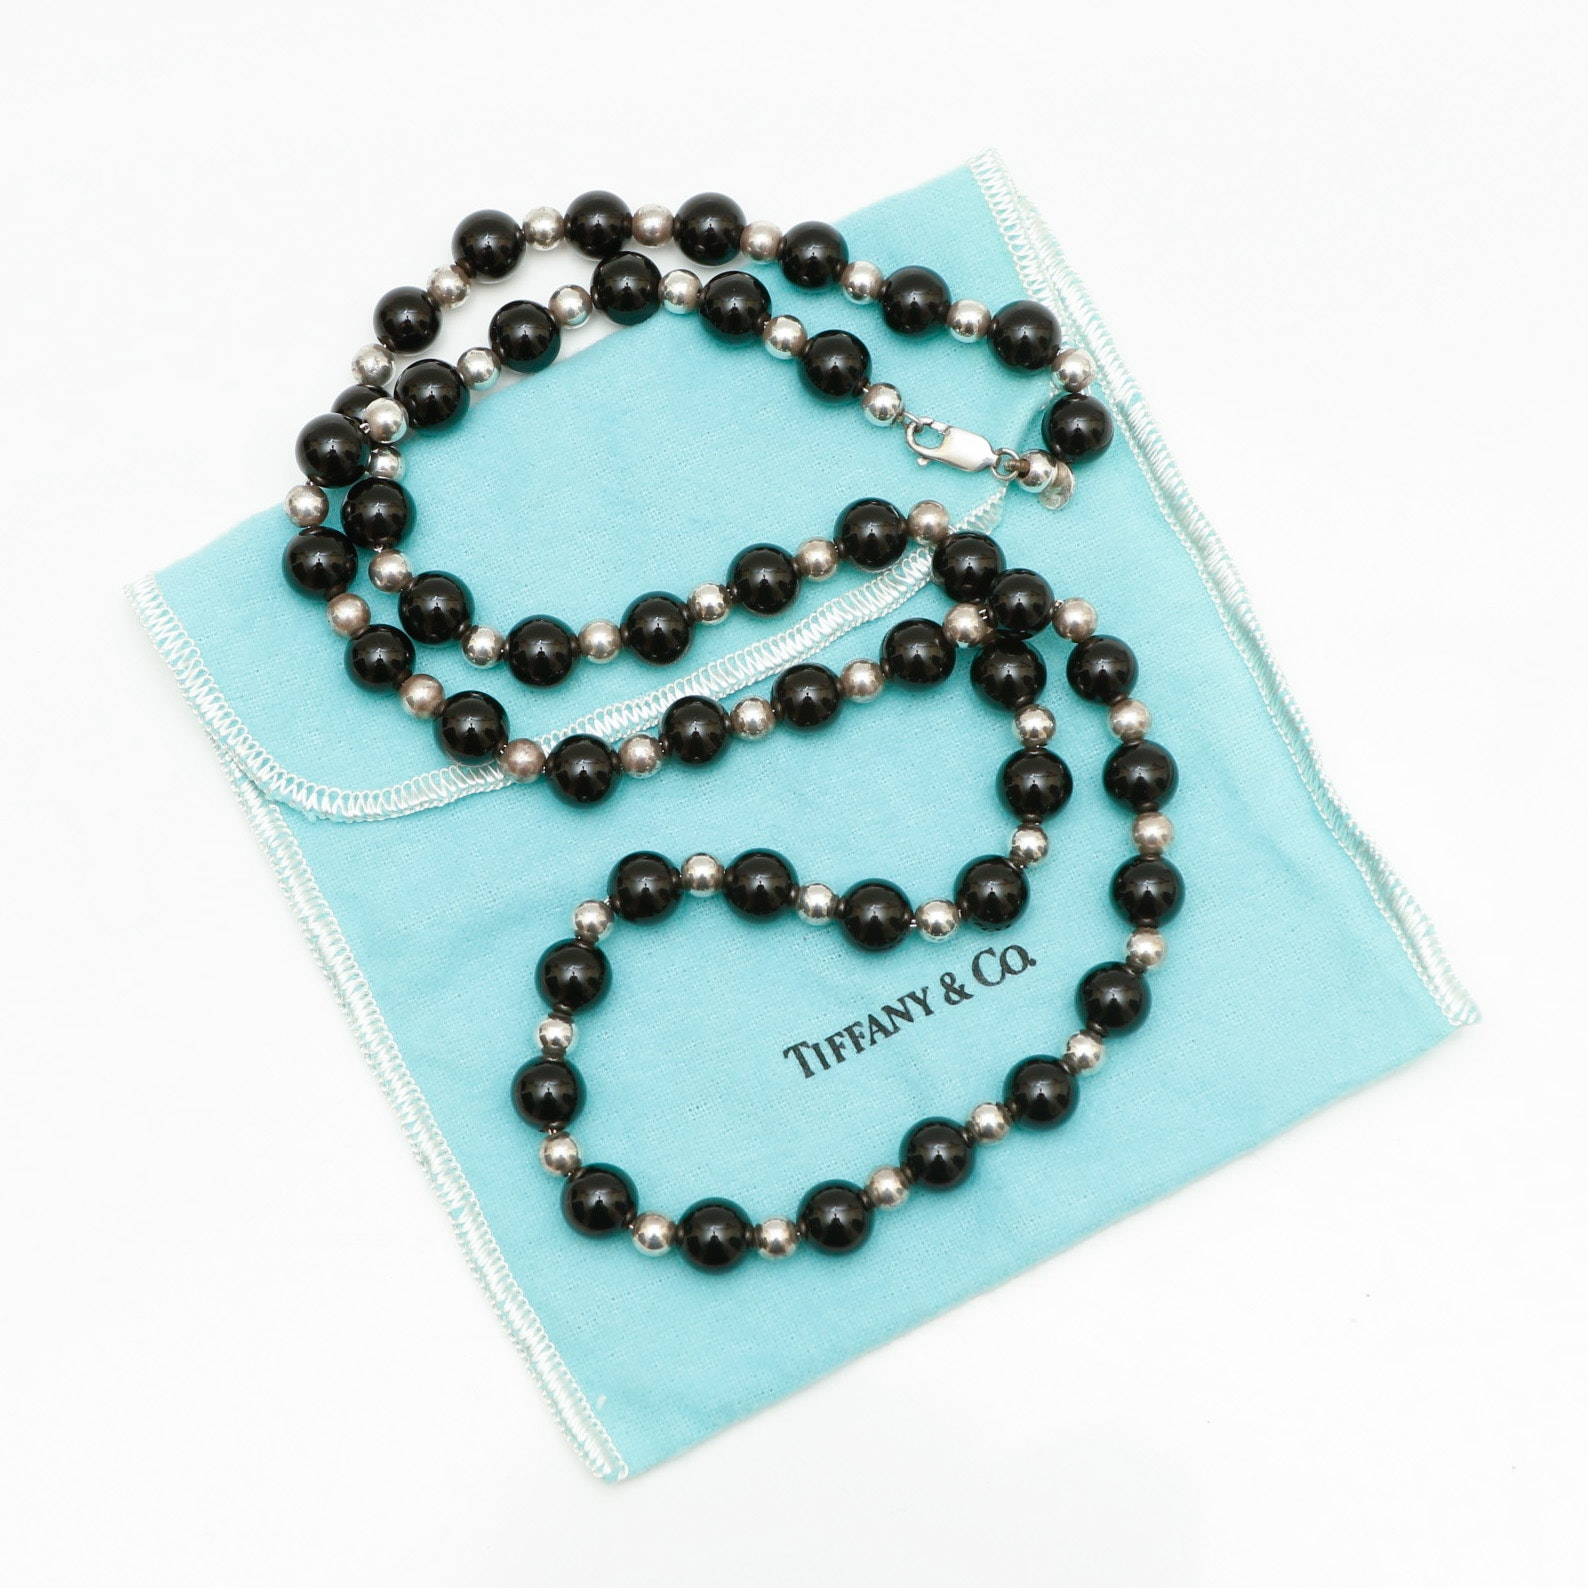 Tiffany & Co. Sterling Silver Onyx Bead Necklace